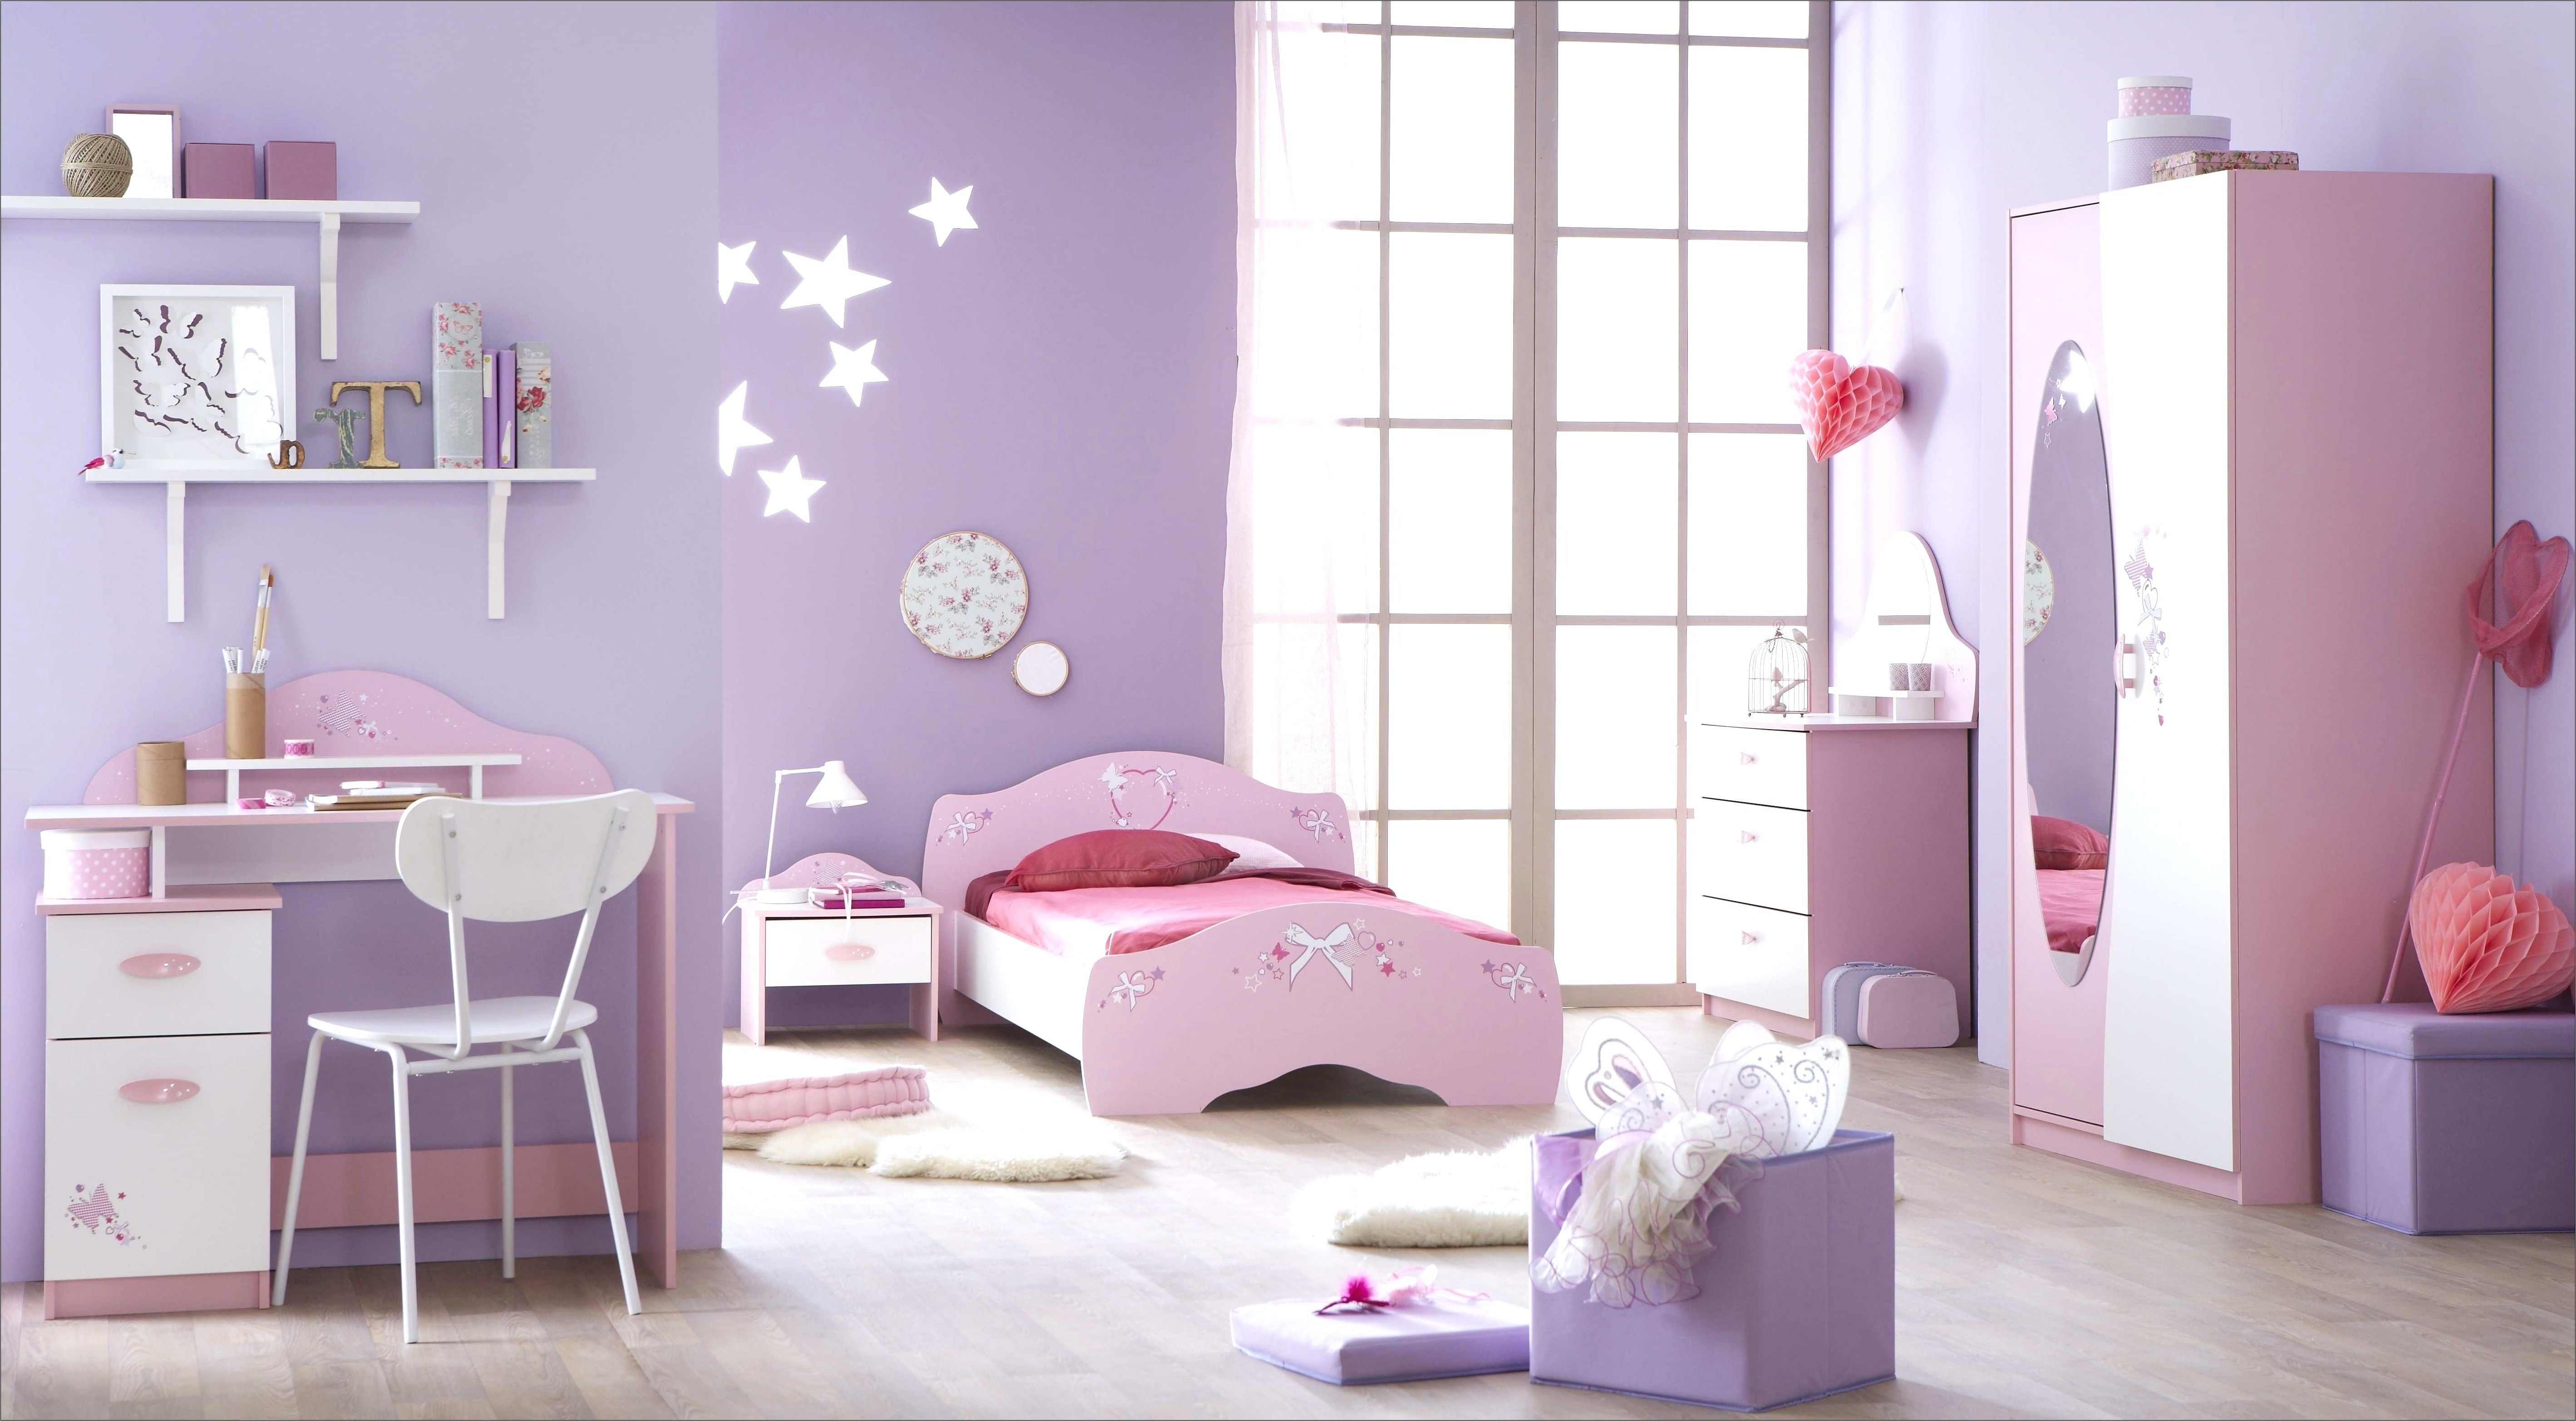 Idee Deco Chambre Fille 3 Ans Idees Deco Chambre Fille Idee